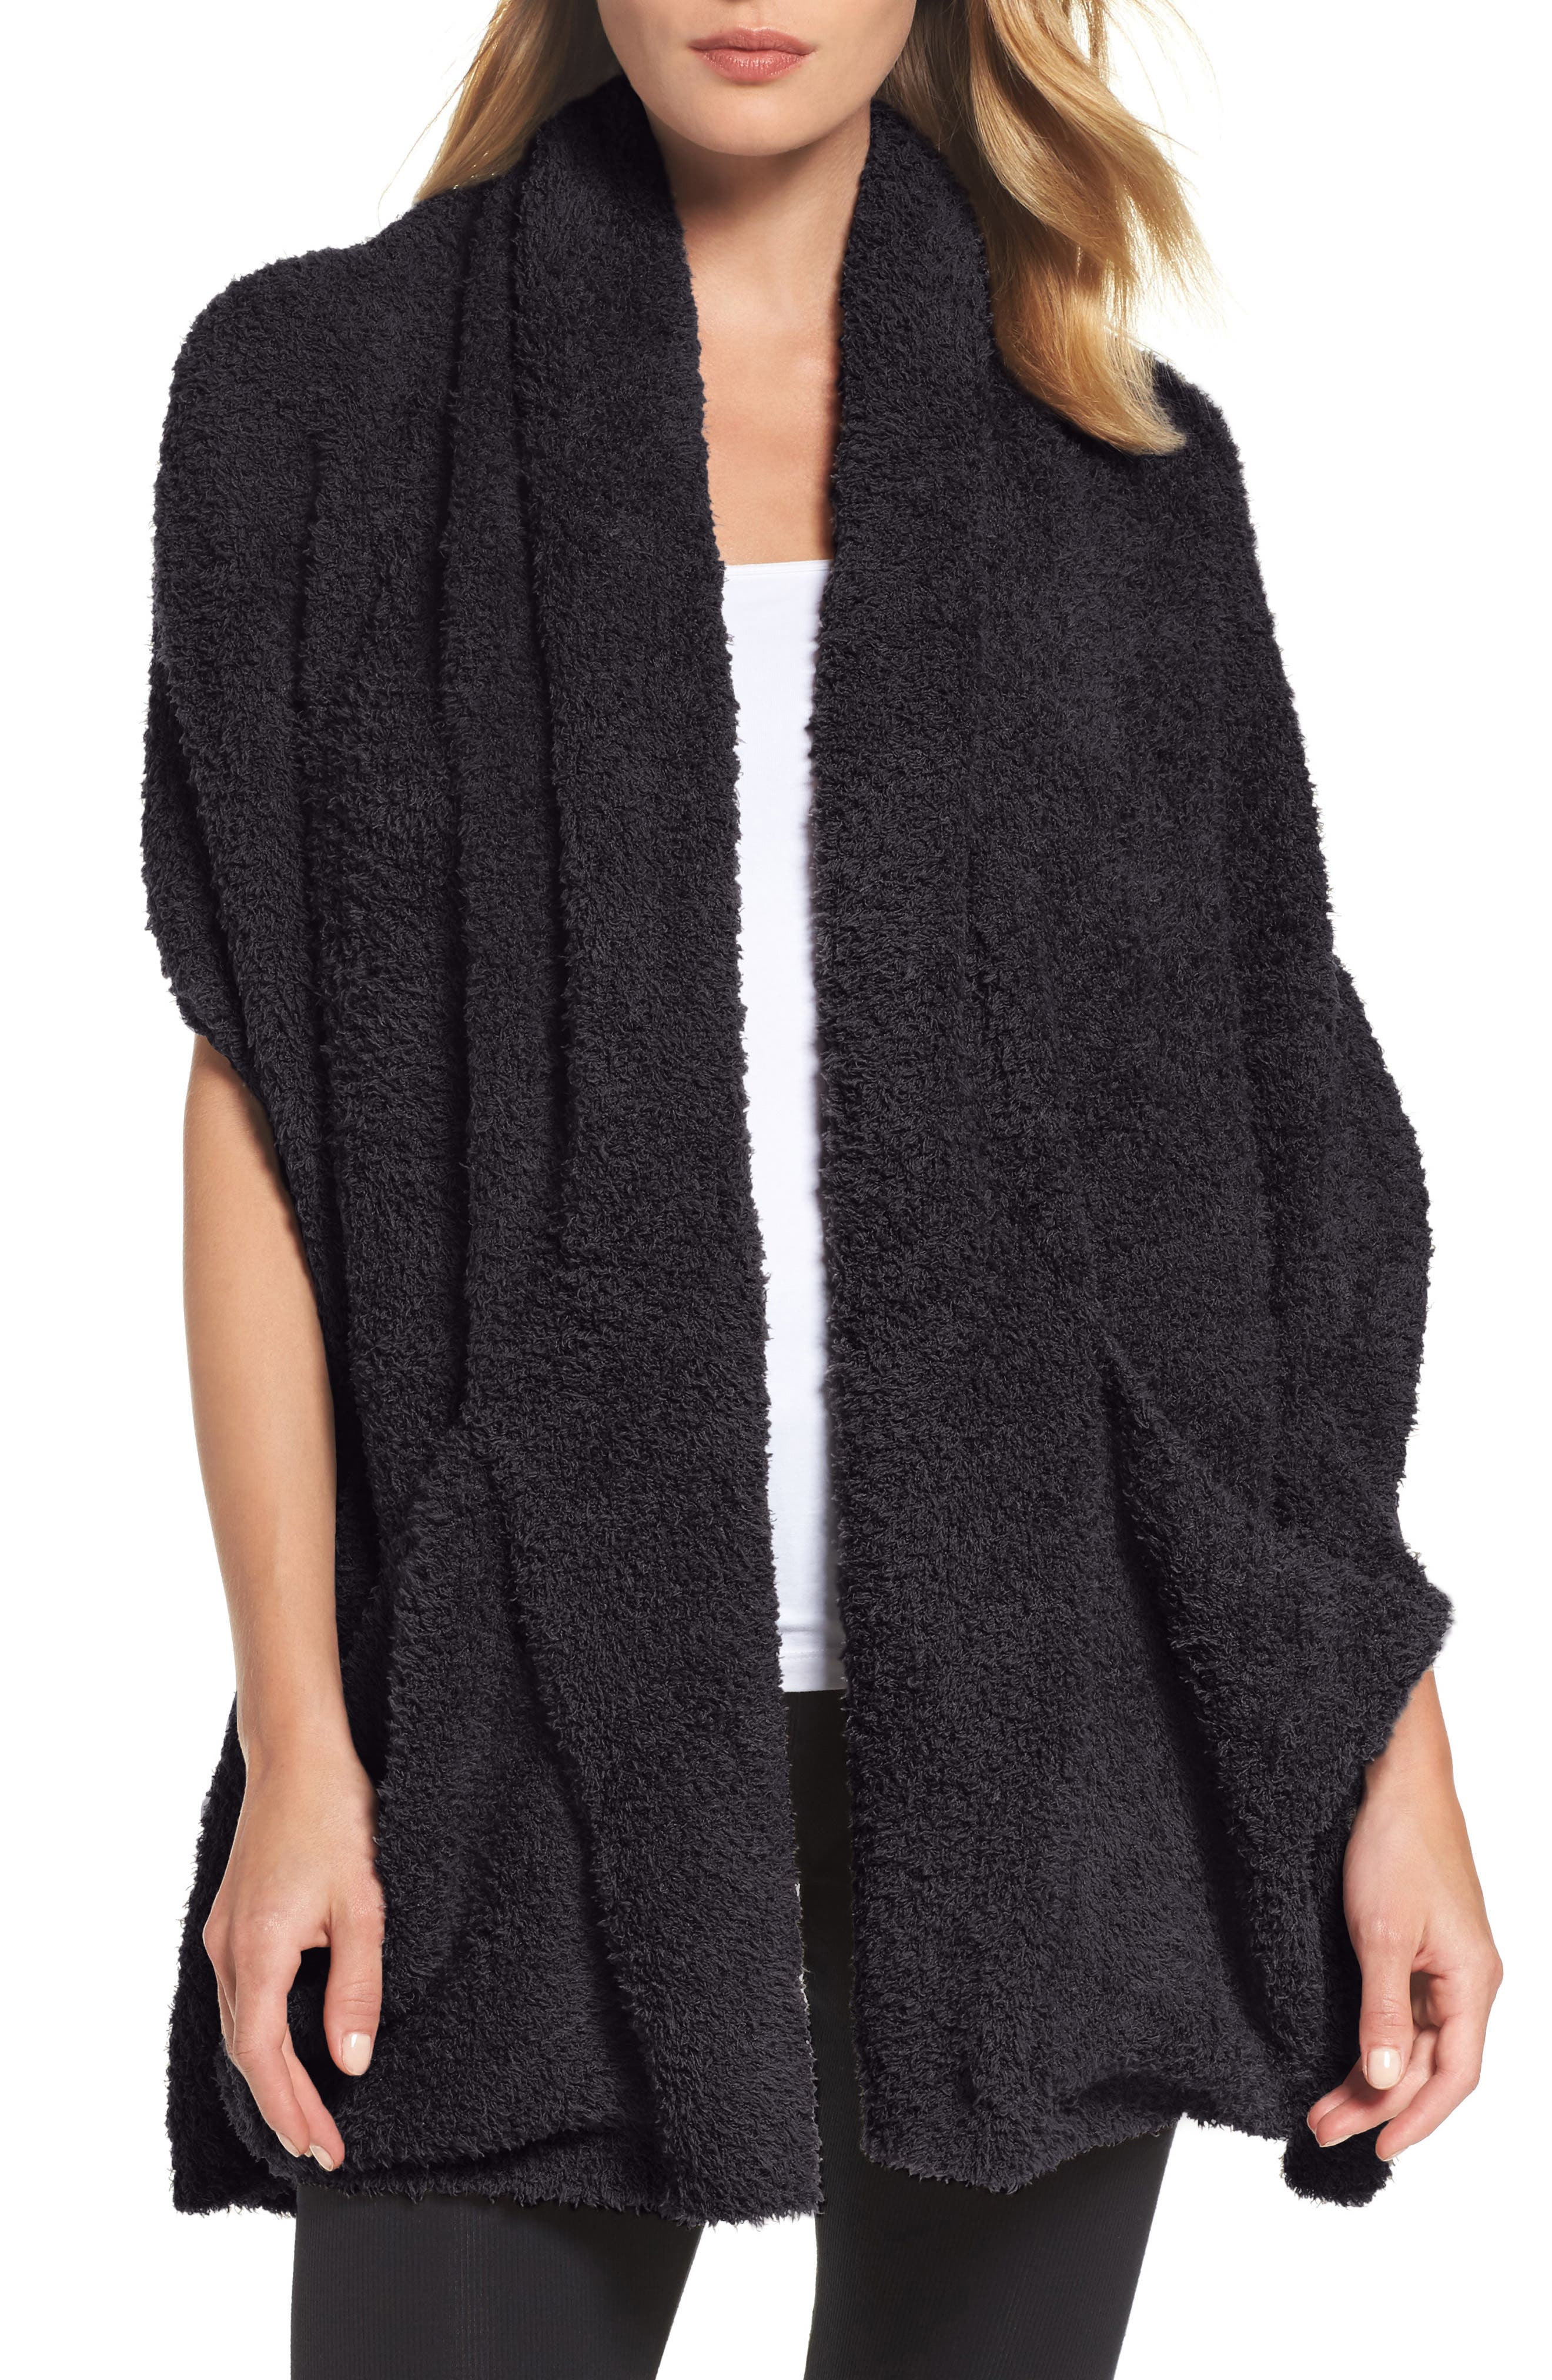 Barefoot Dreams Cozychic Travel Shawl, Size One Size - Black (Online Only)